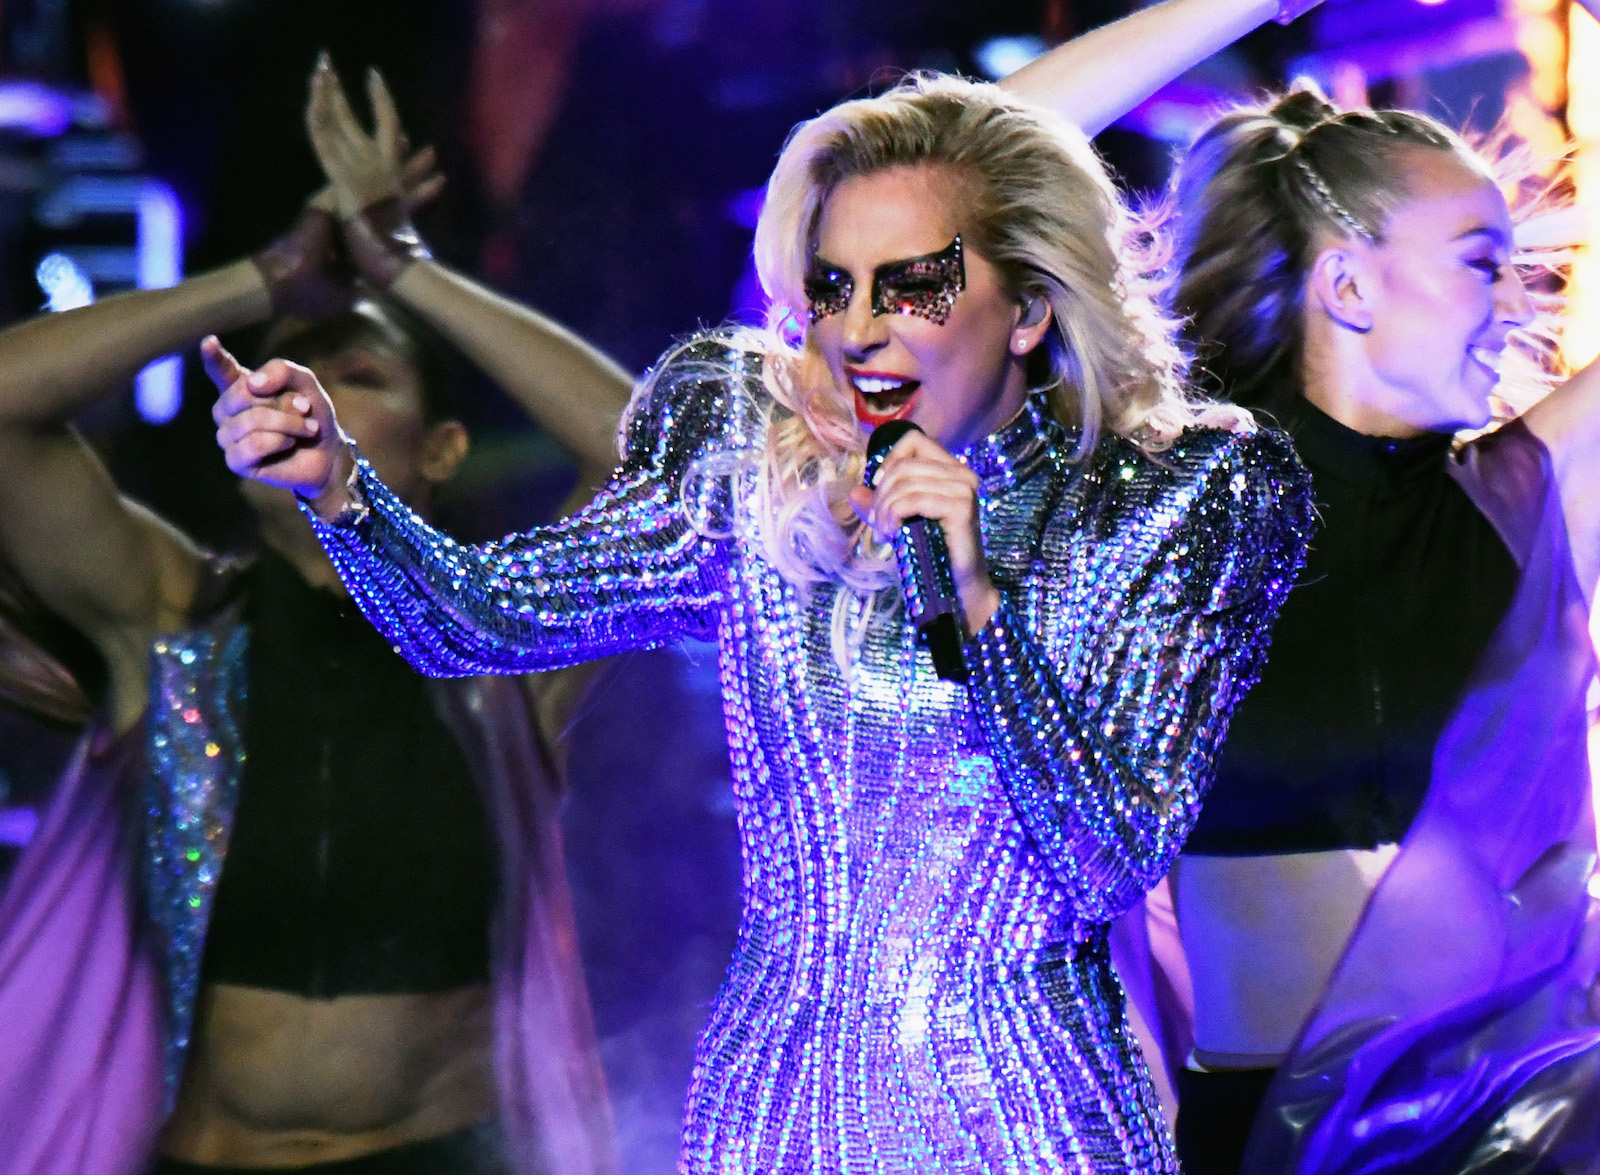 HOUSTON, TX - FEBRUARY 05:  Musician Lady Gaga performs onstage during the Pepsi Zero Sugar Super Bowl LI Halftime Show at NRG Stadium on February 5, 2017 in Houston, Texas.  (Photo by Larry Busacca/Getty Images)